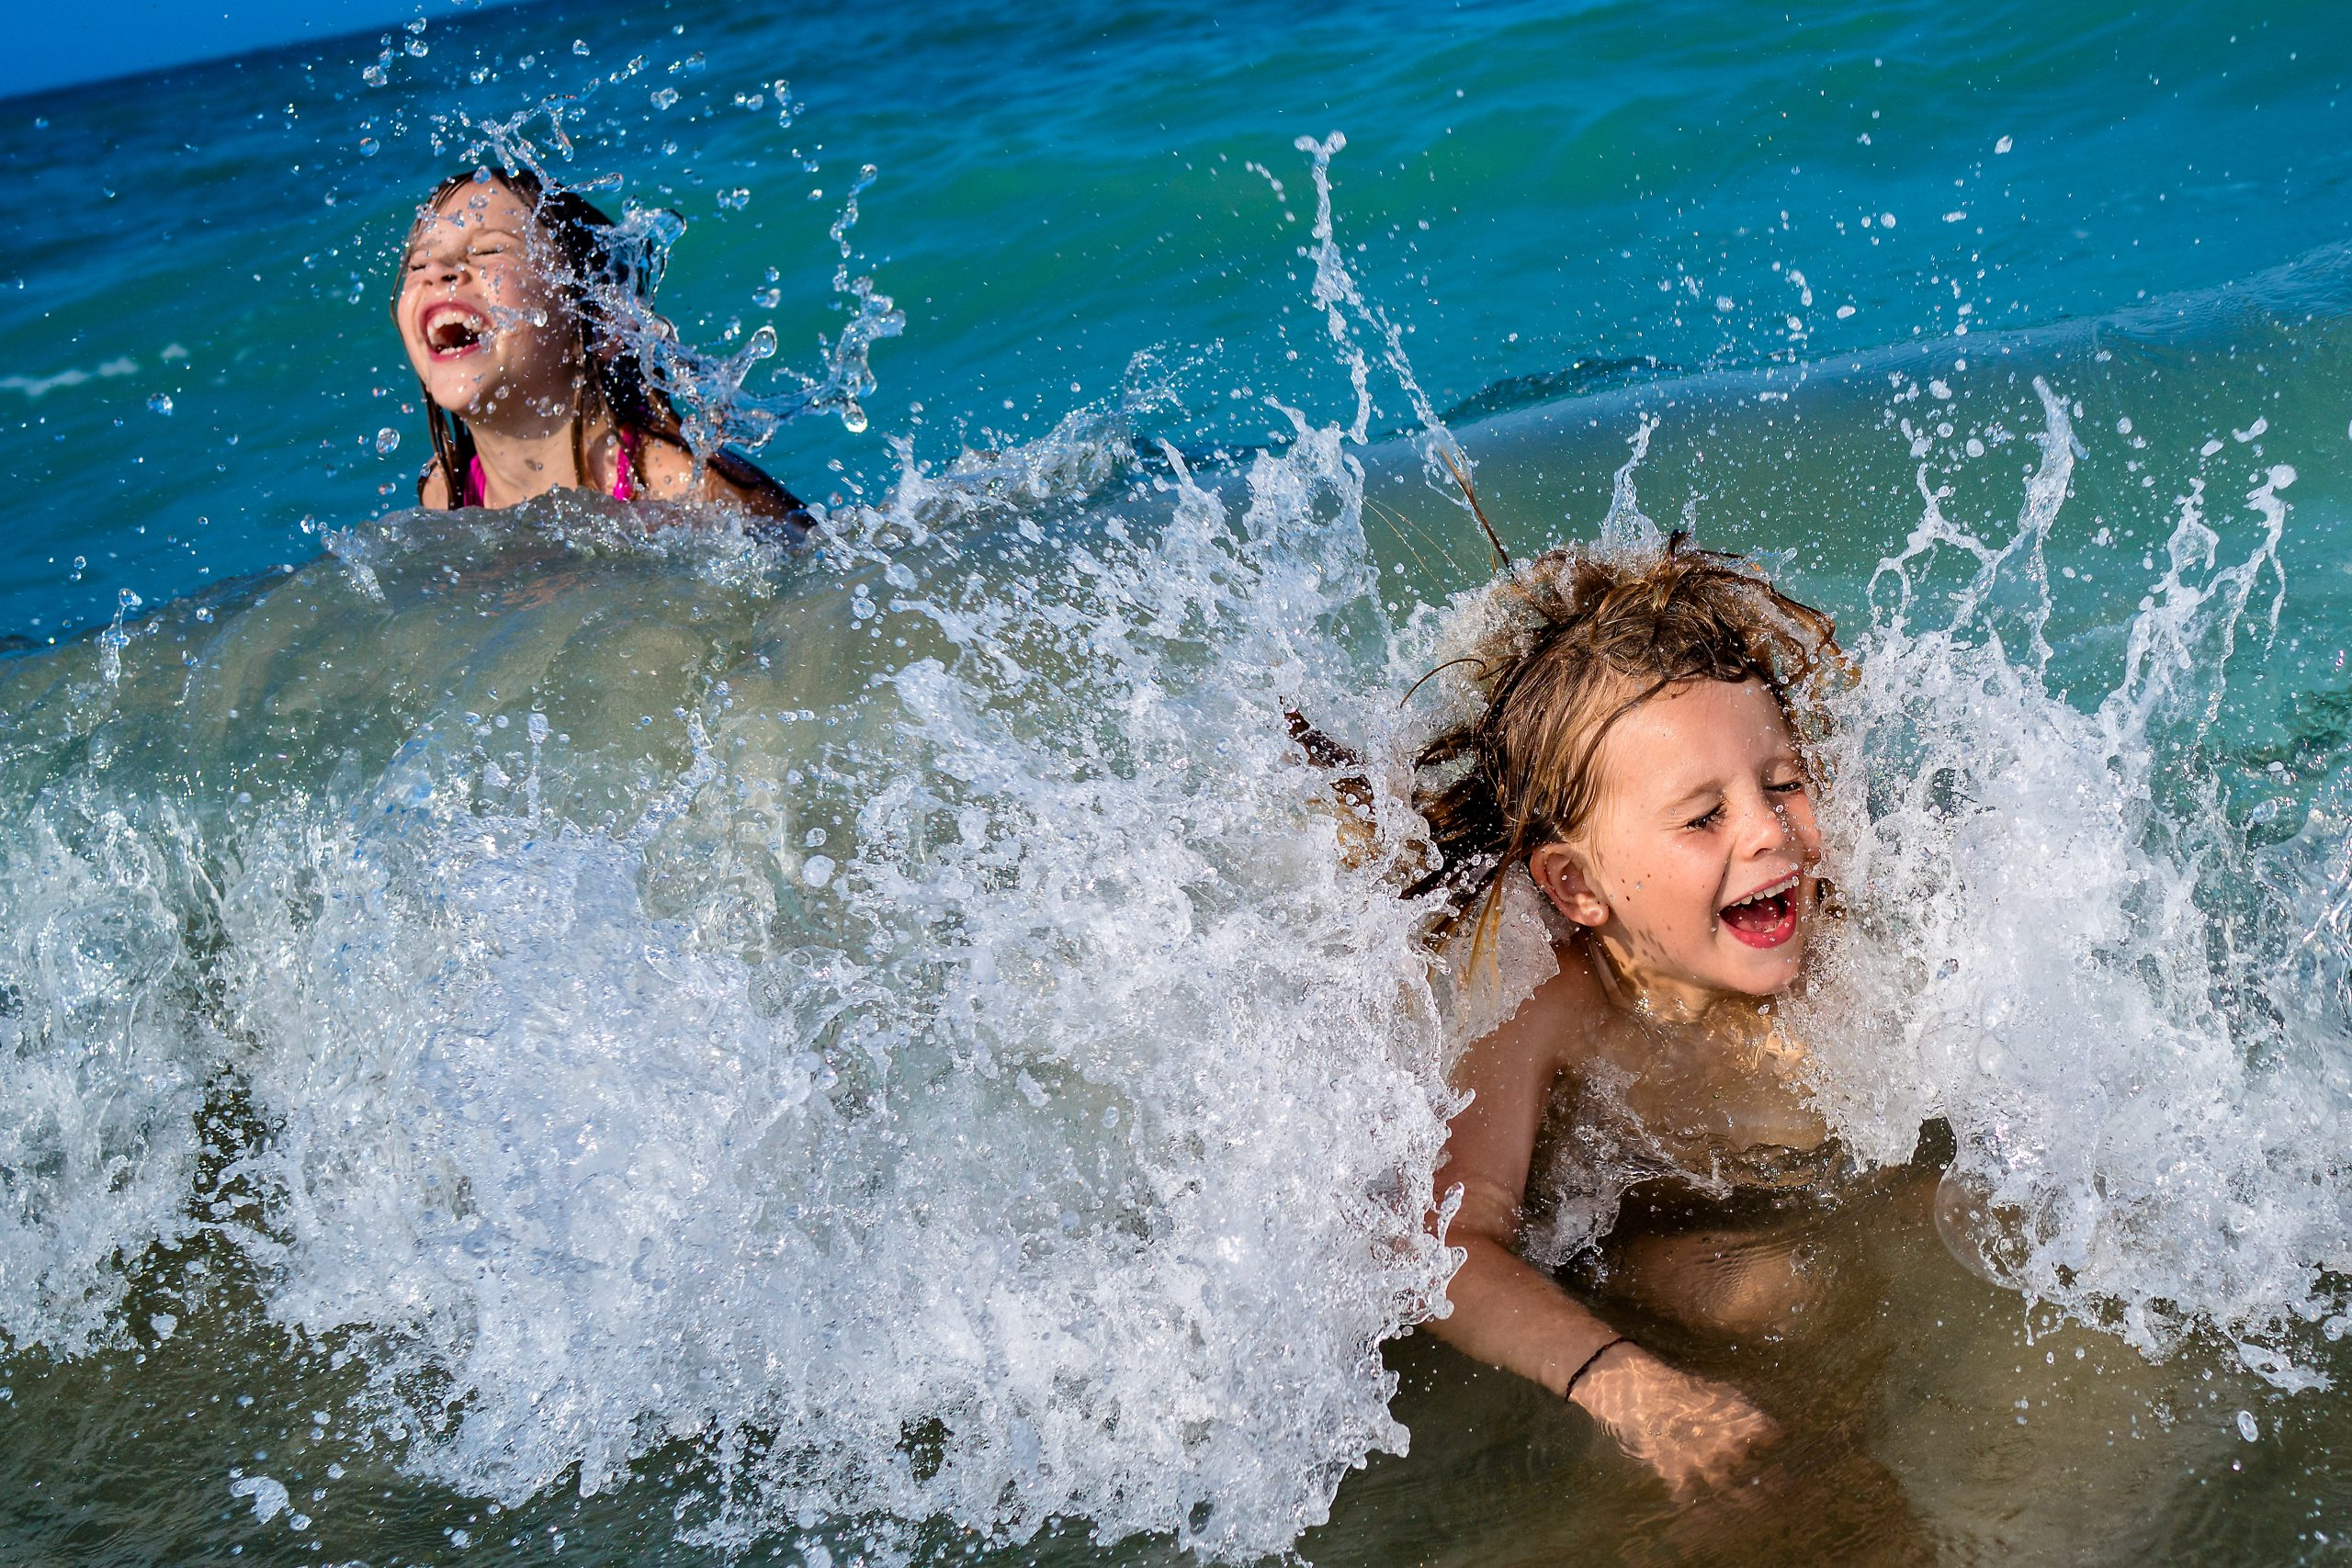 Two children laugh while getting splashed by waves on beach